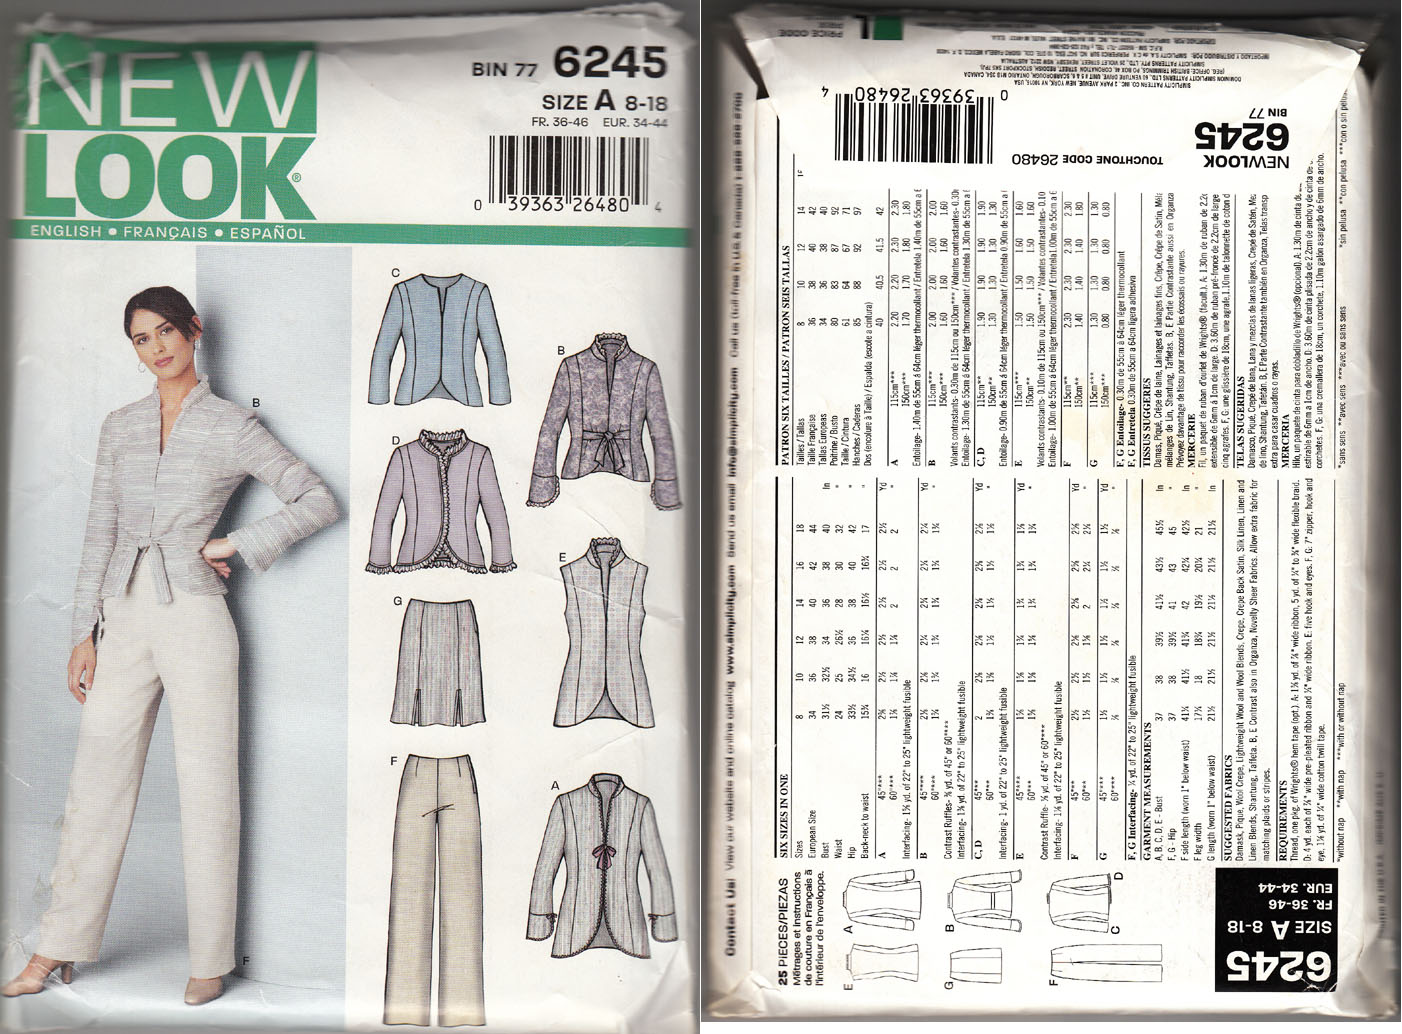 Pattern index cosplay cassie see sew 3827 box 2 w mccalls 3157 box 2 w new look 6207 box 2 w simplicity 4602 box 2 w simplicity 6352 box 1 w jeuxipadfo Gallery